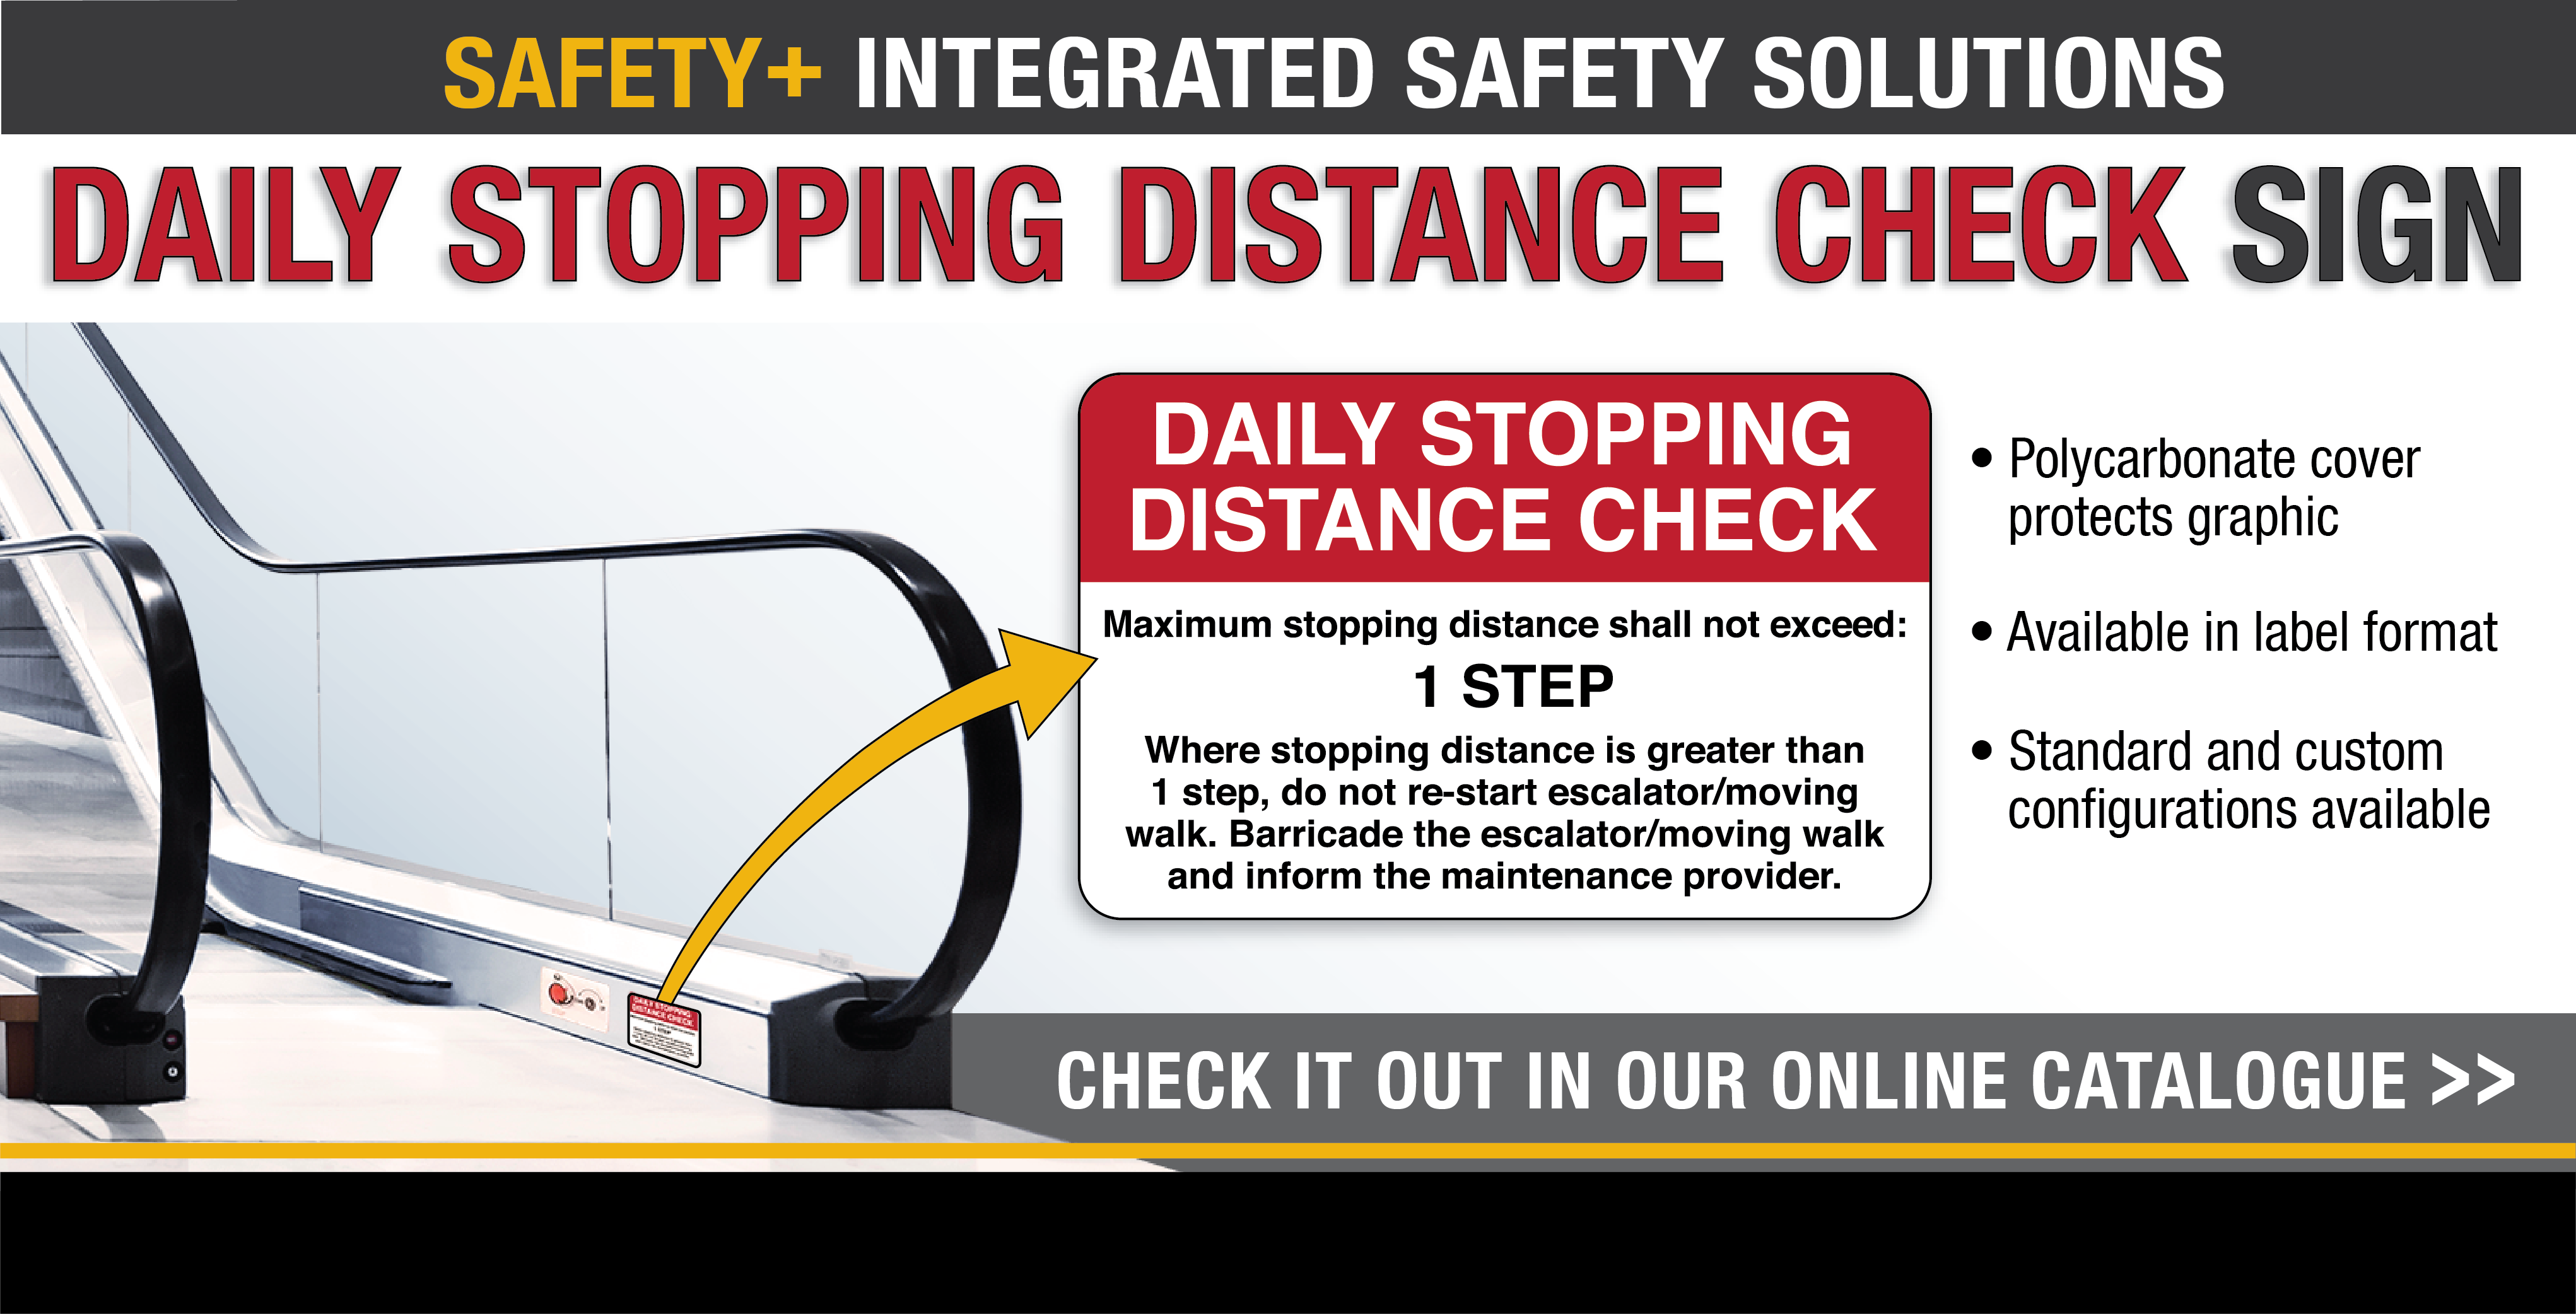 Daily Stopping Distance Check